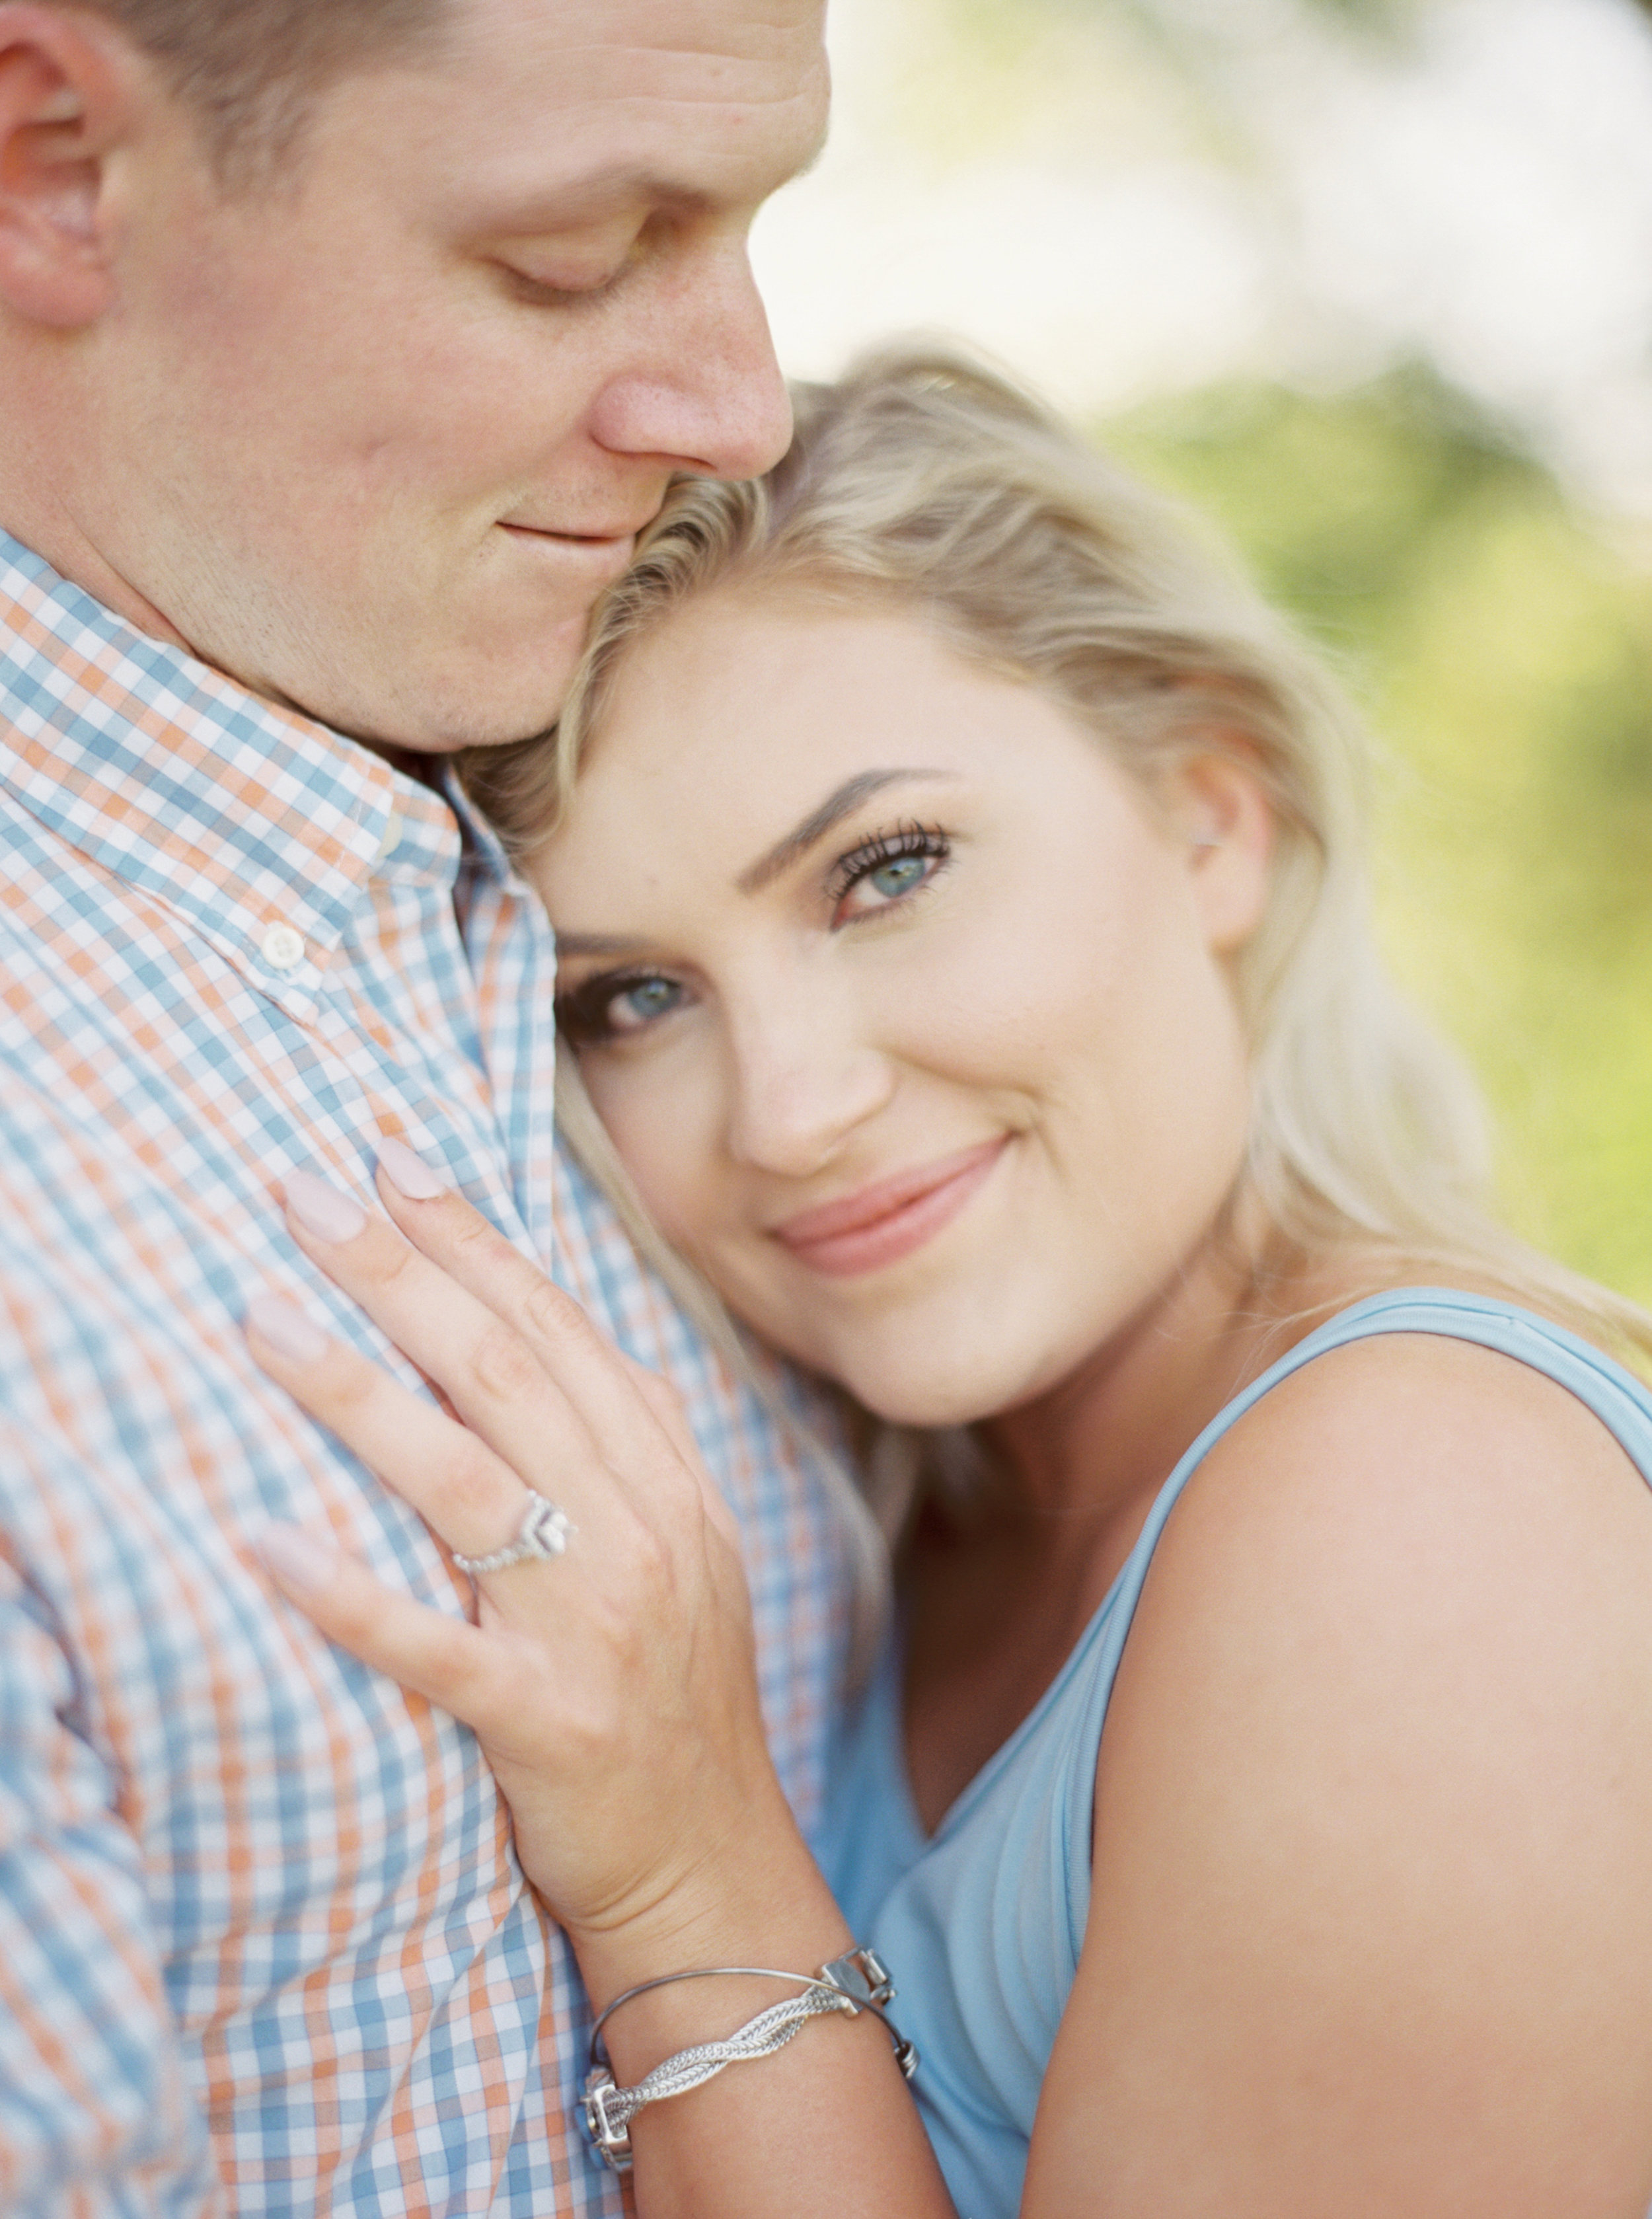 Hannah_Derrick_Engagement_Knoxville_Outdoor_Vineyard_Orchard__Film_Abigail_malone_Photography-44.jpg